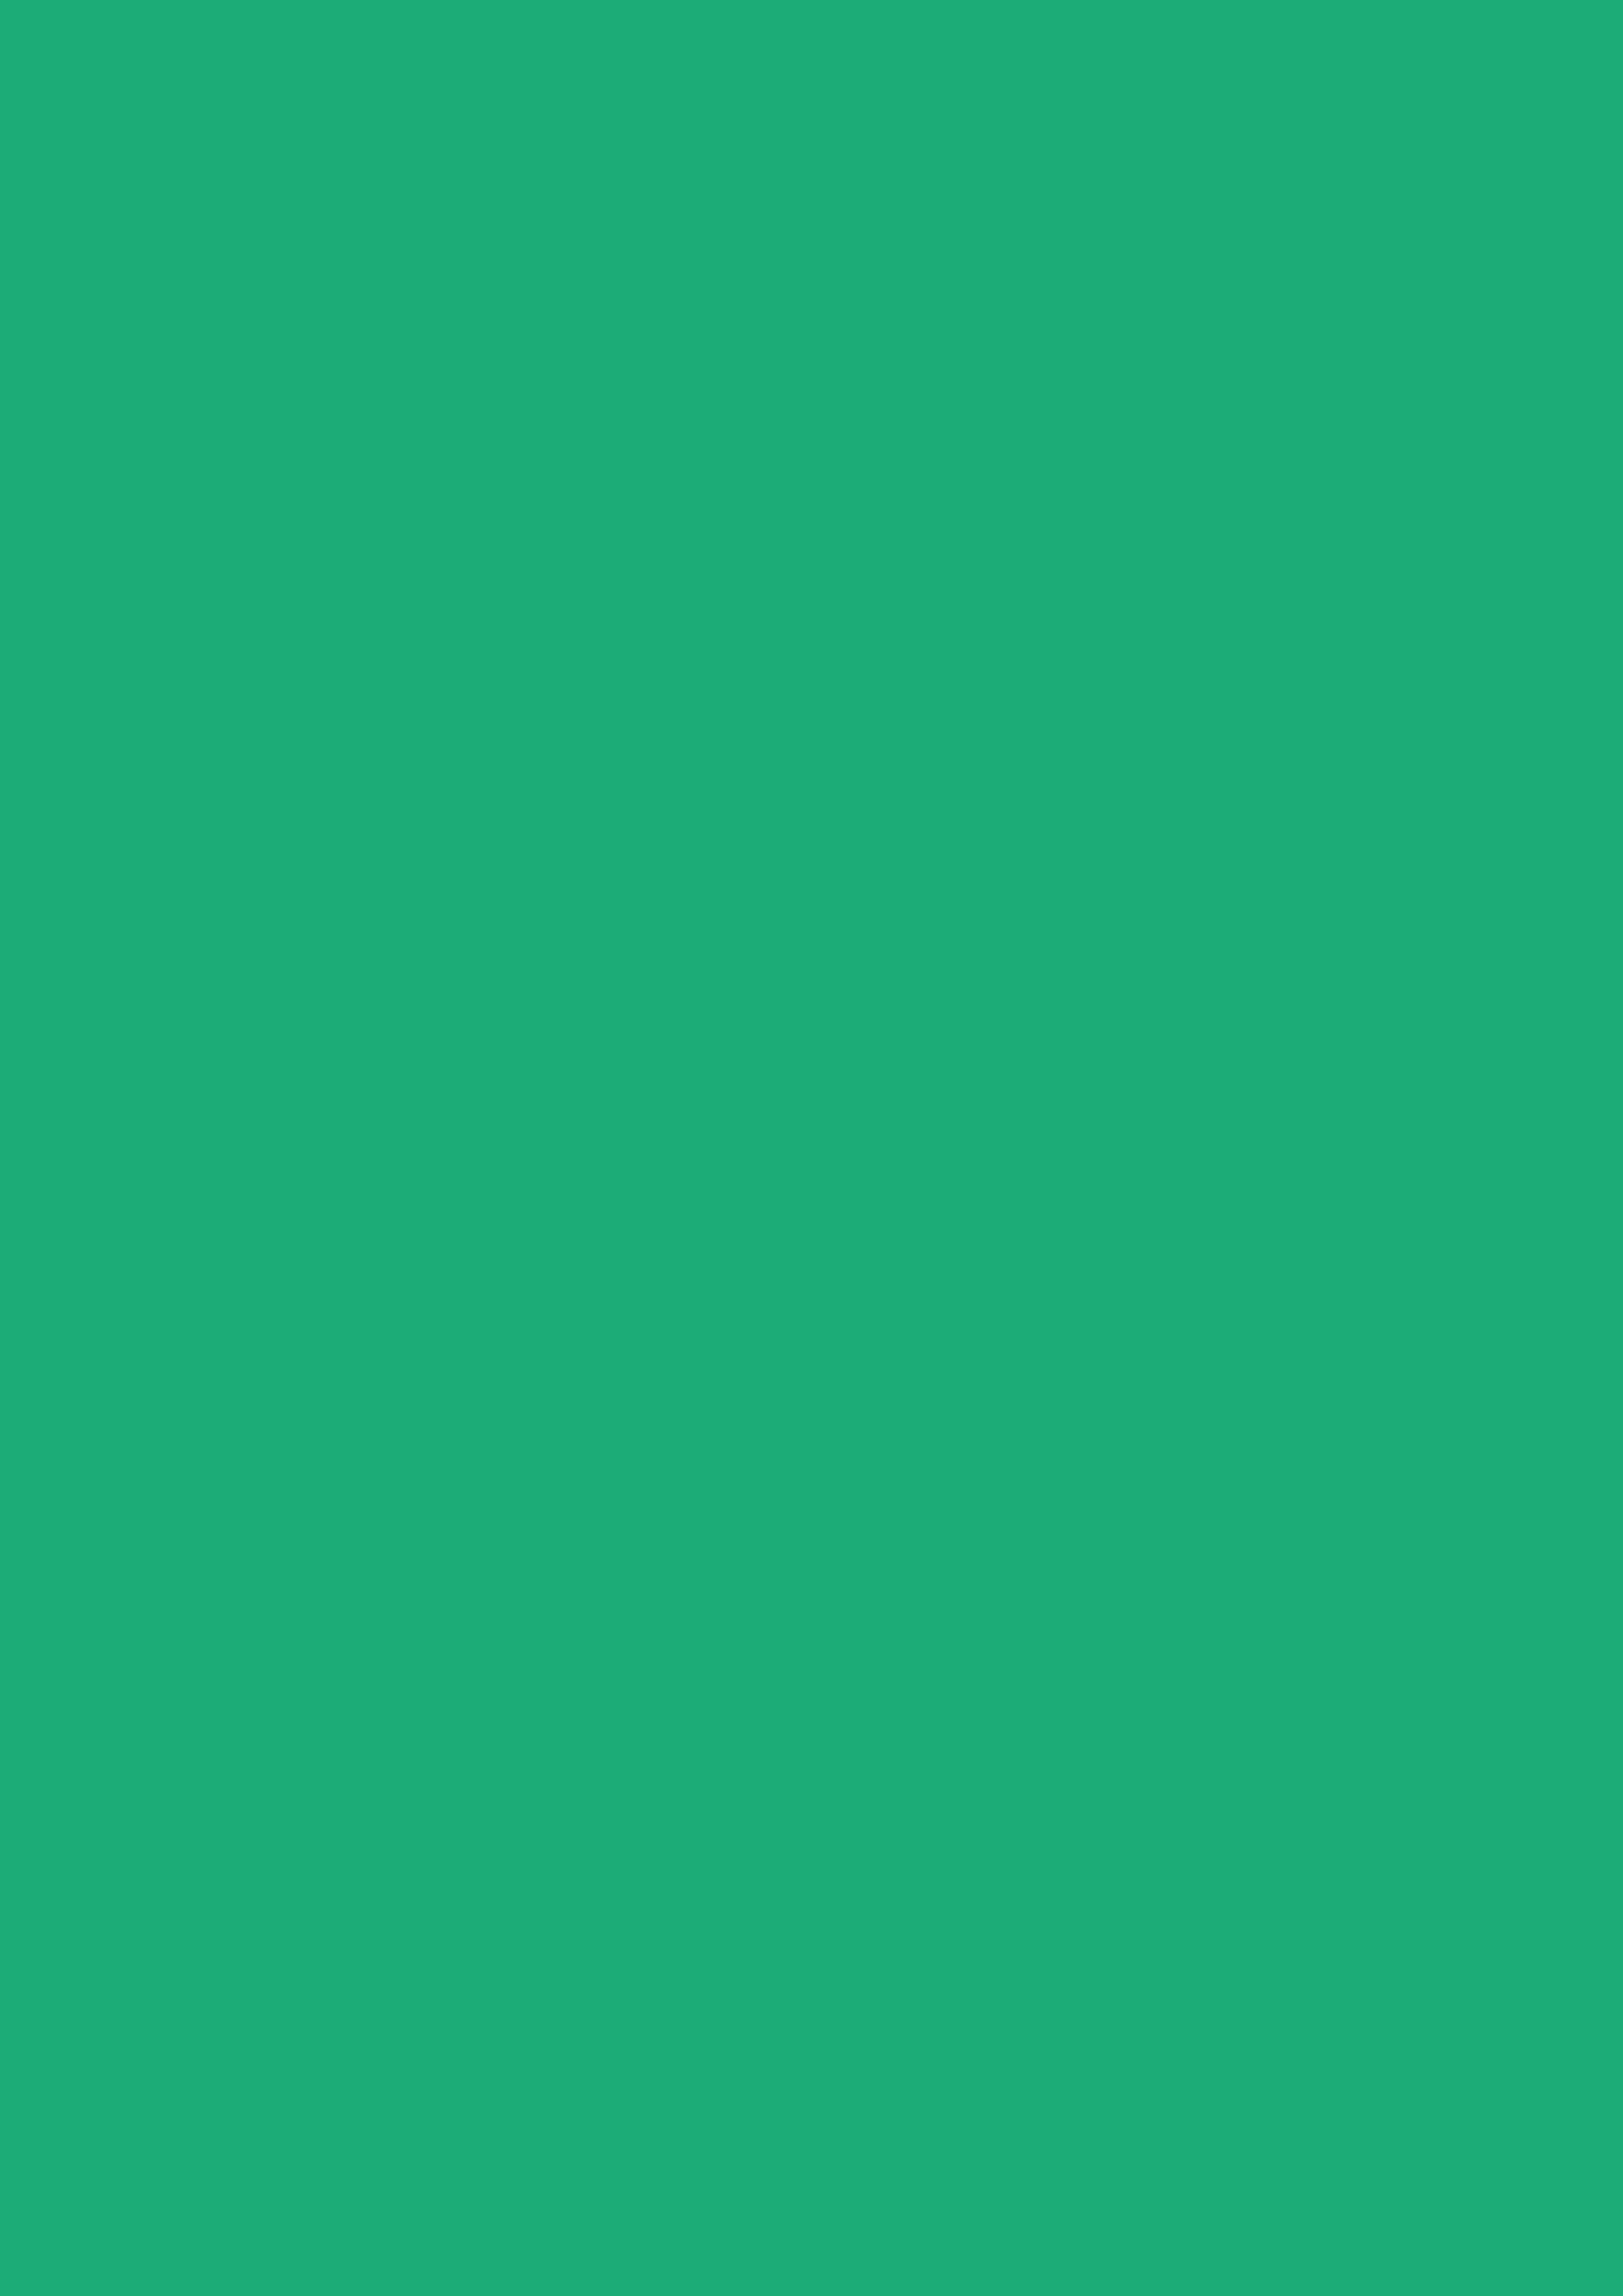 2480x3508 Green Crayola Solid Color Background